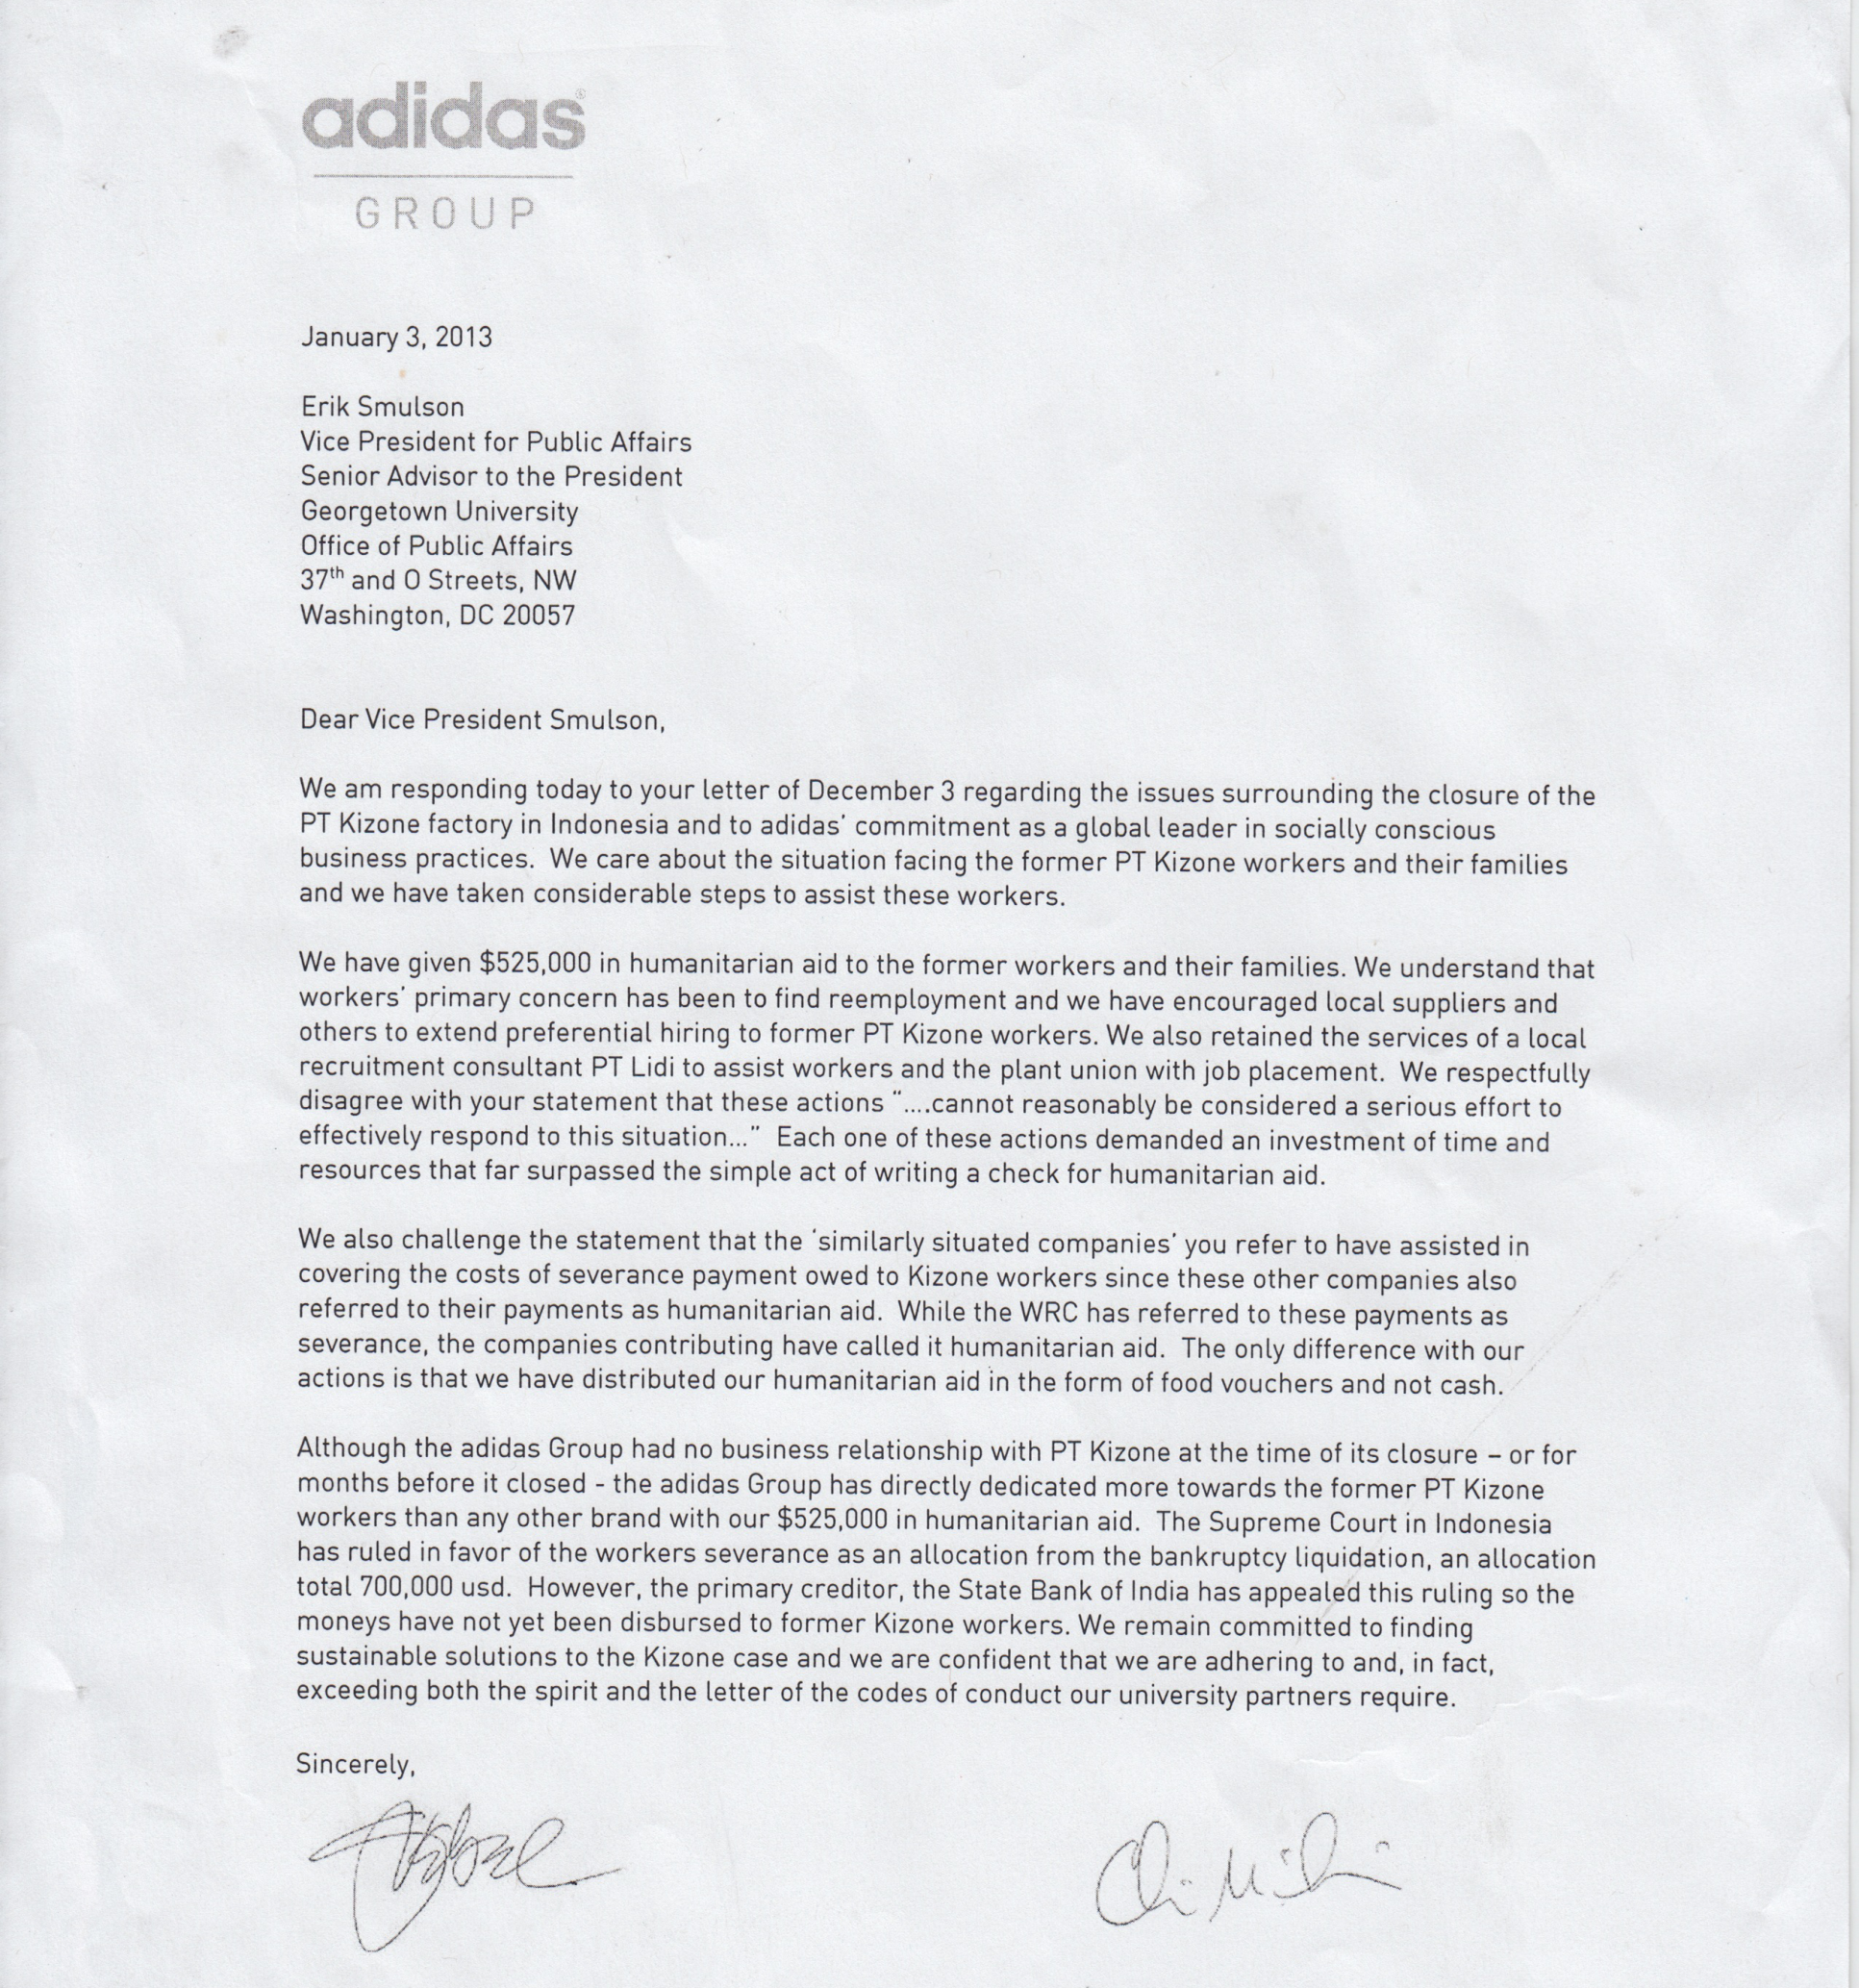 GU Cancelled Contract Despite Adidas' Assurances